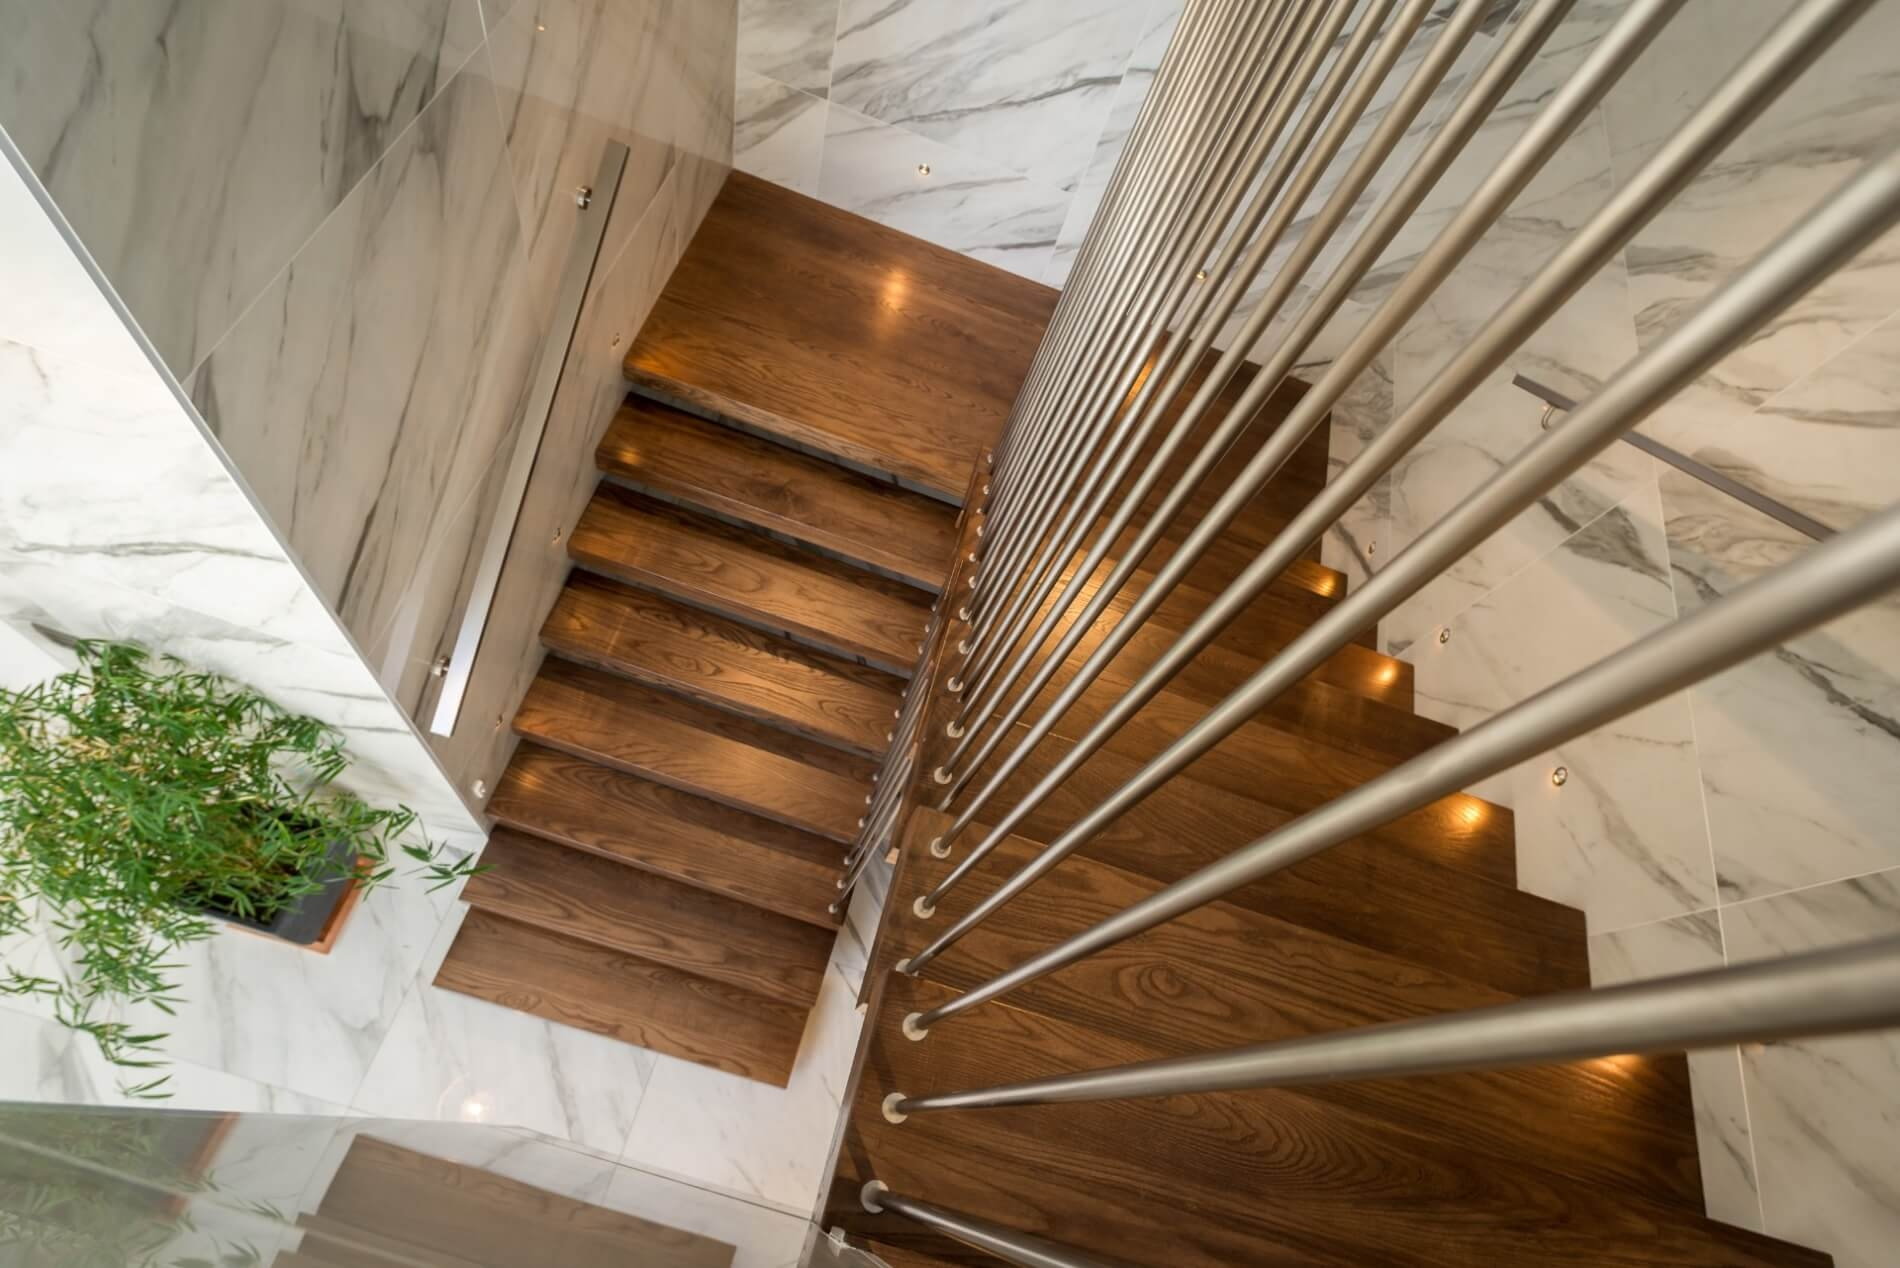 How To Calculate The Cost Of Stairs In Nz Stylecraft Stairways   Cost To Carpet Stairs   Stair Railing   Handrail   Carpet Runners   Carpet Flooring   Anderson Tuftex